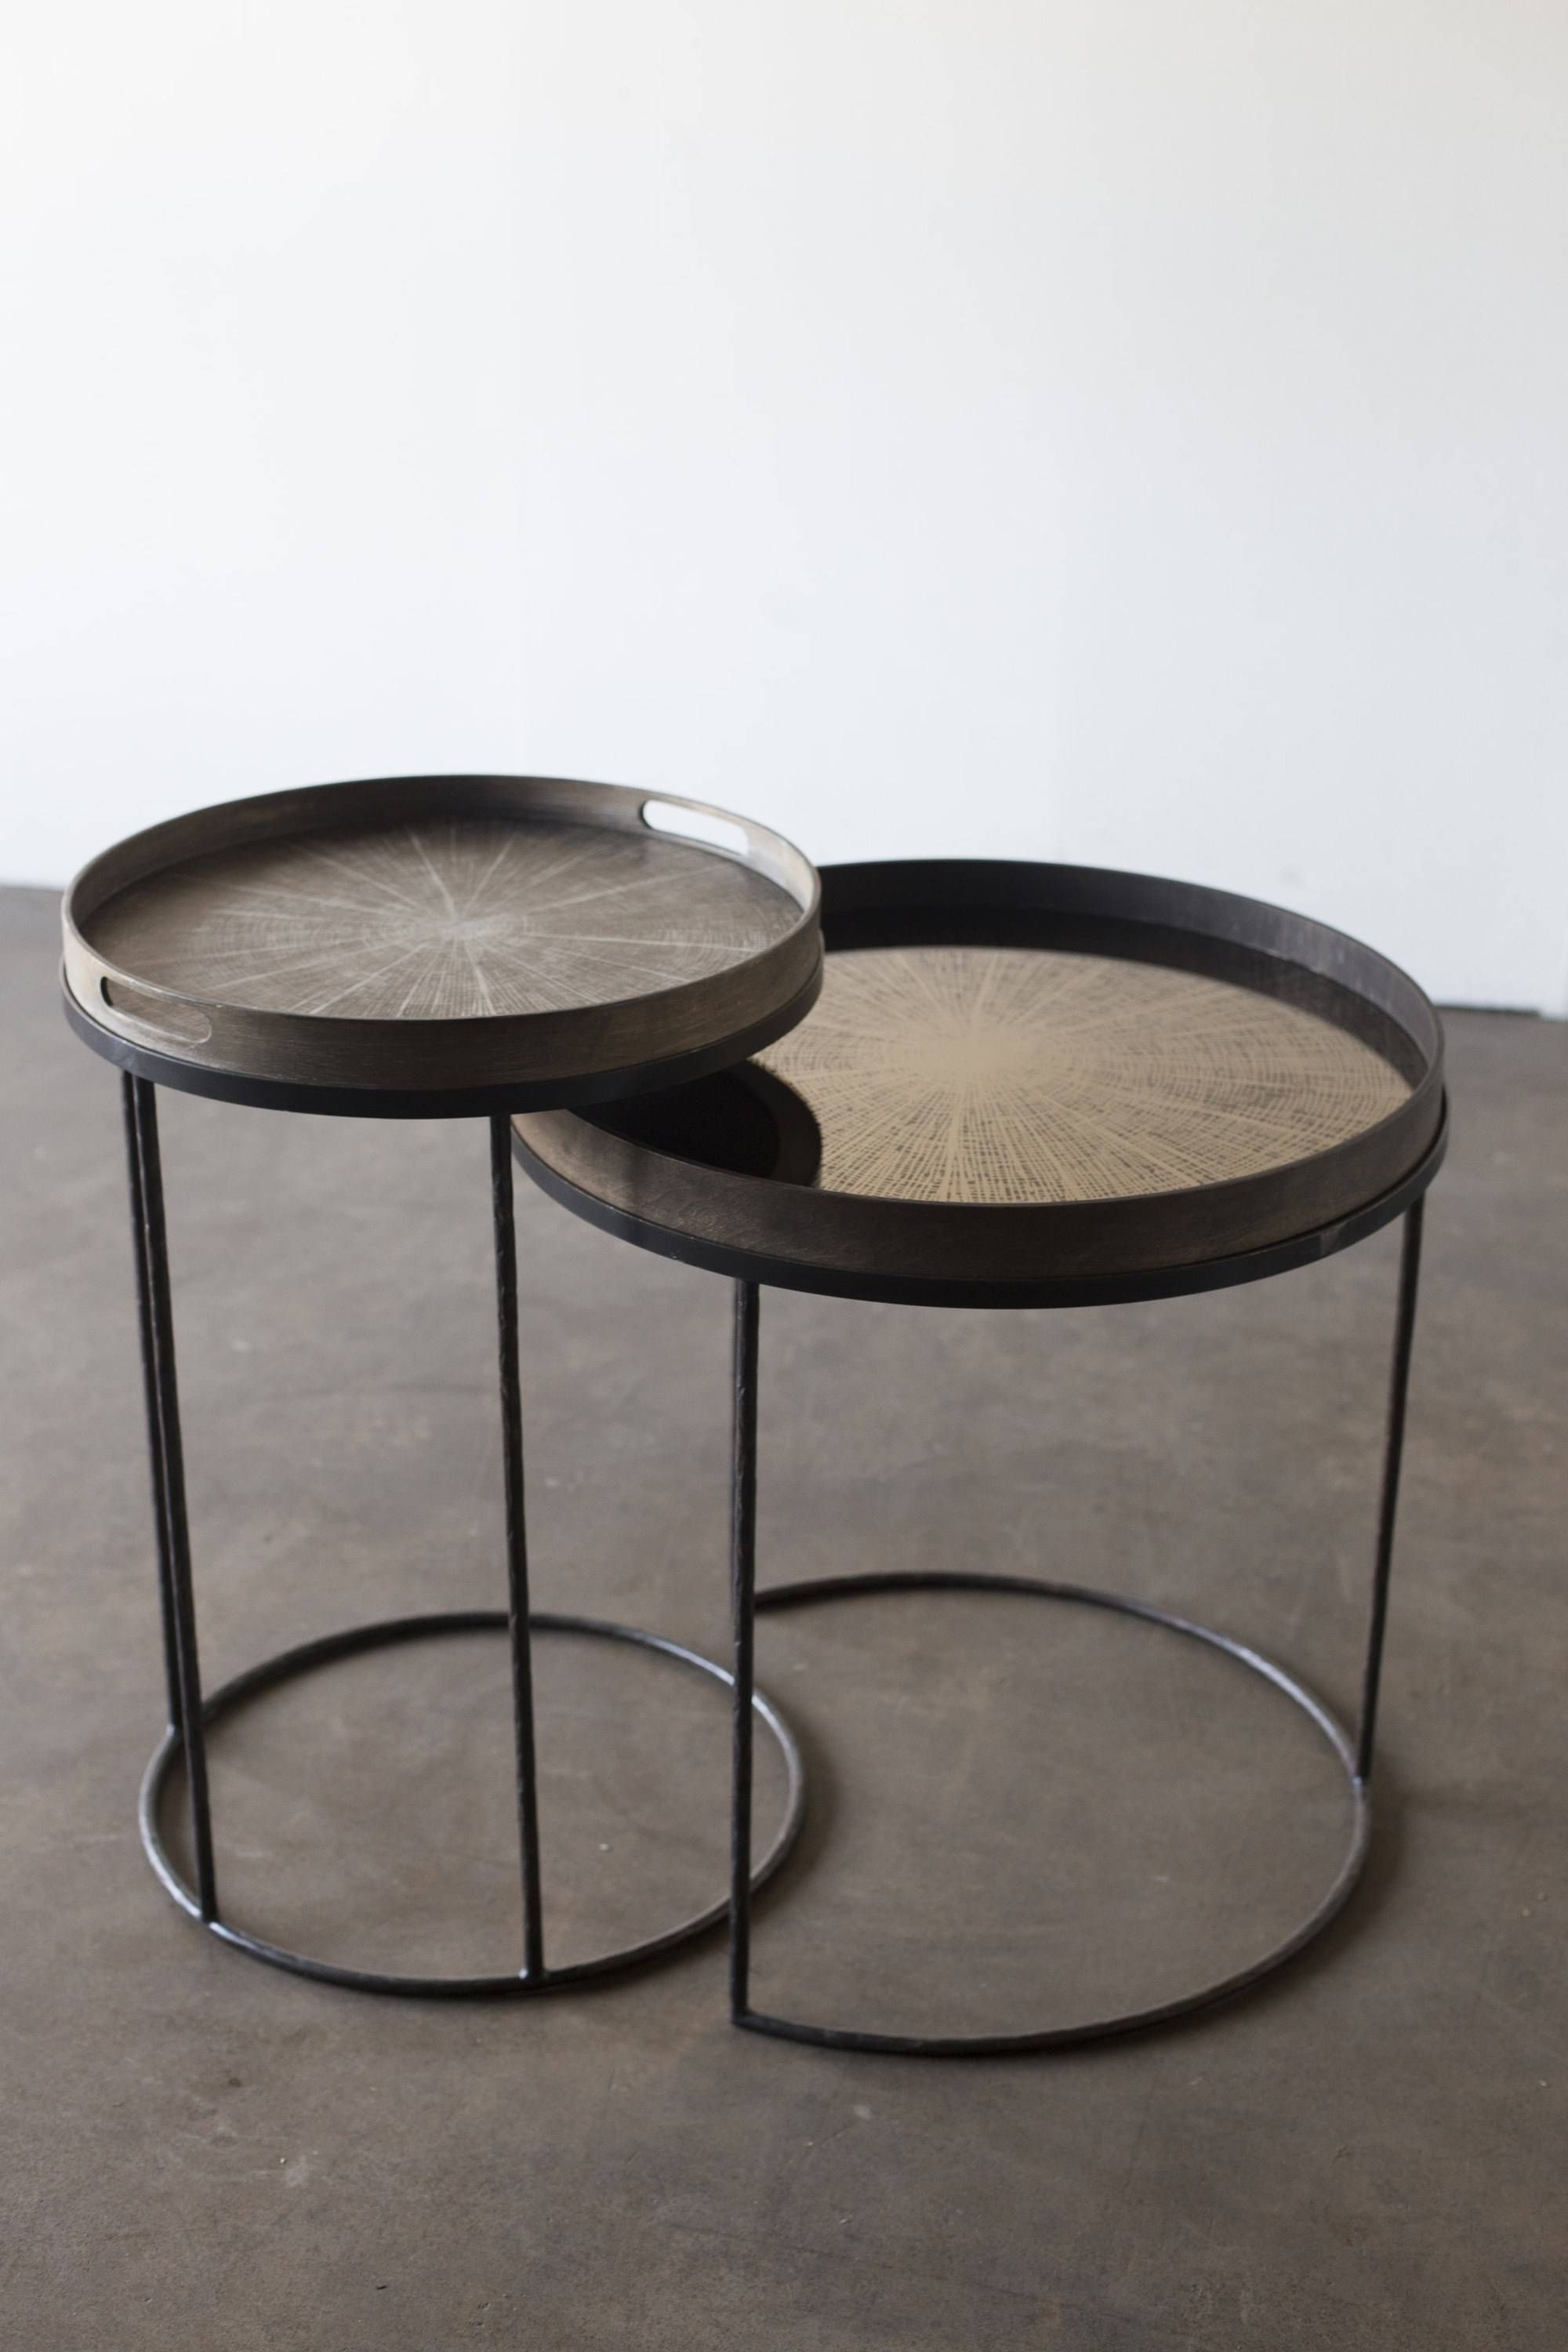 Round Coffee Table With Tray Round Tray Tables - Setnotre pertaining to Round Tray Coffee Tables (Image 21 of 30)